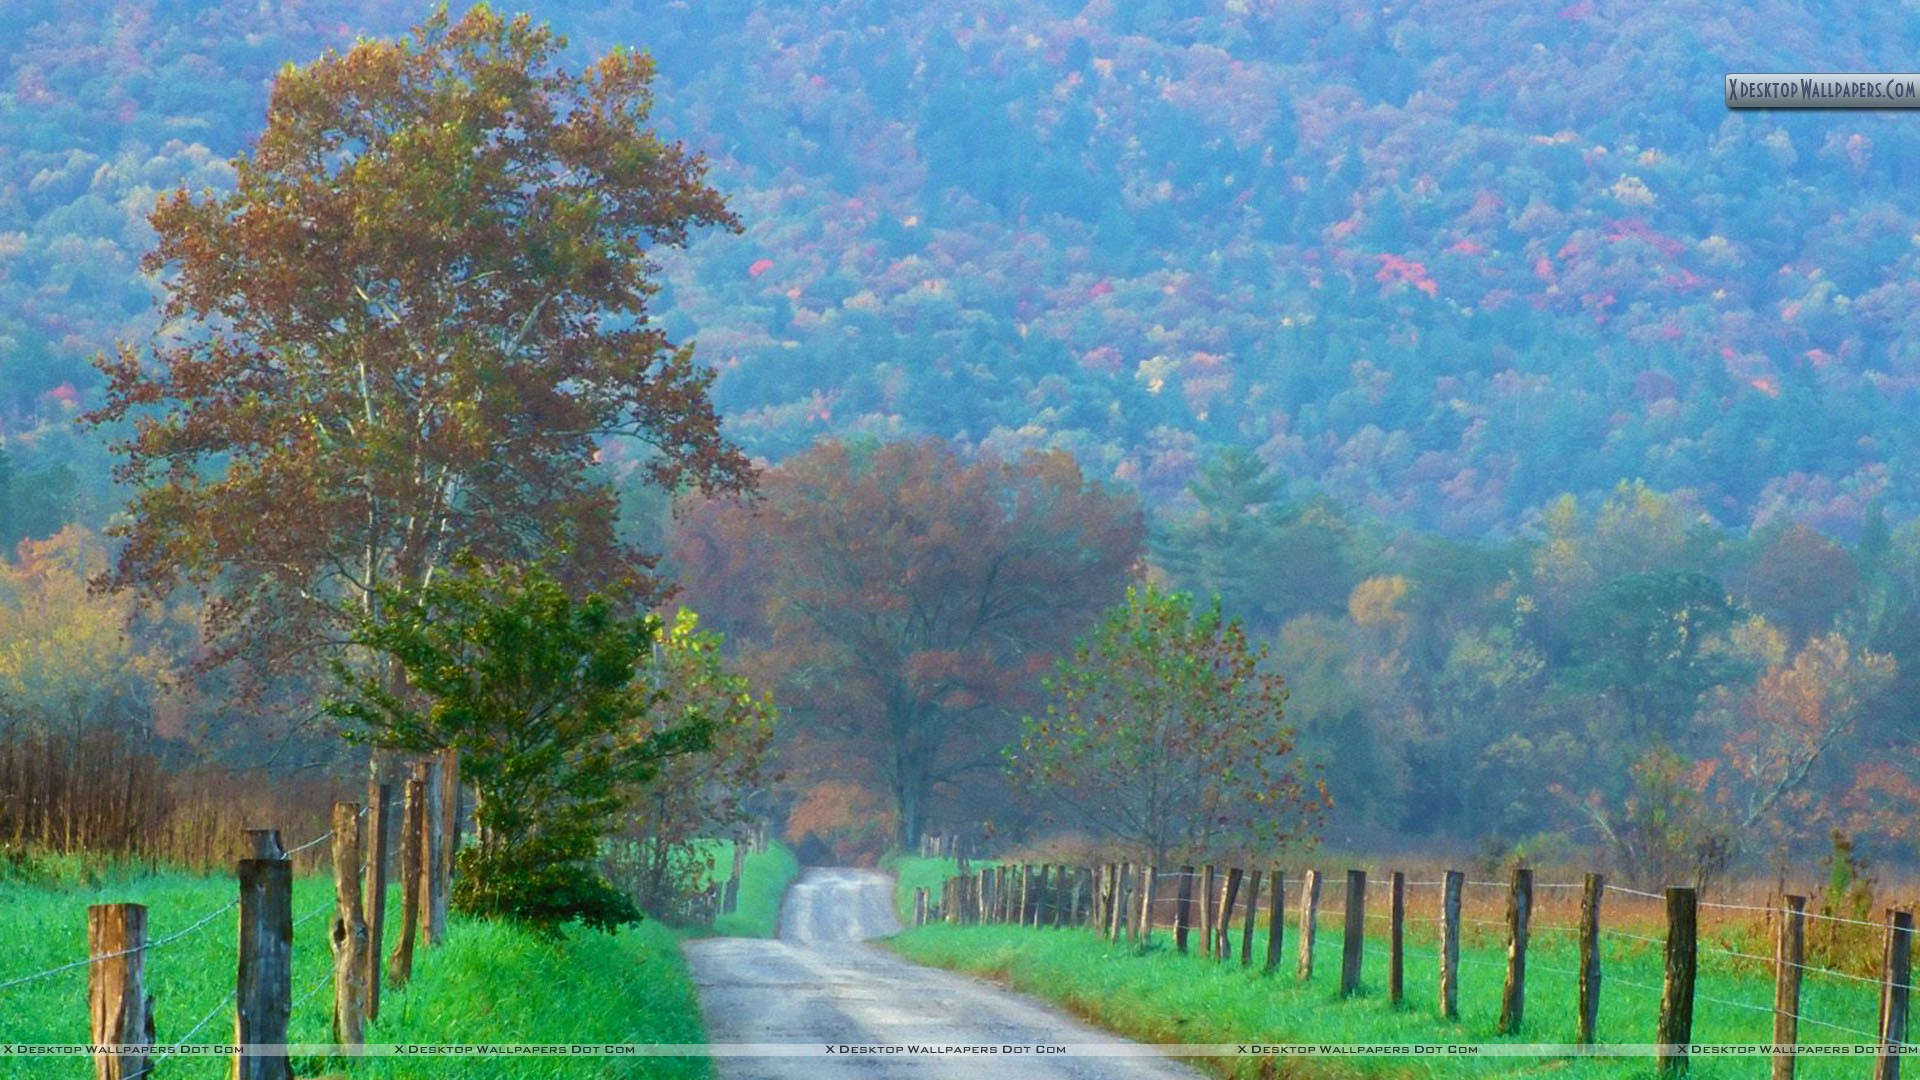 Cades Cove Great Smoky Mountains National Park Tennessee 1920x1080